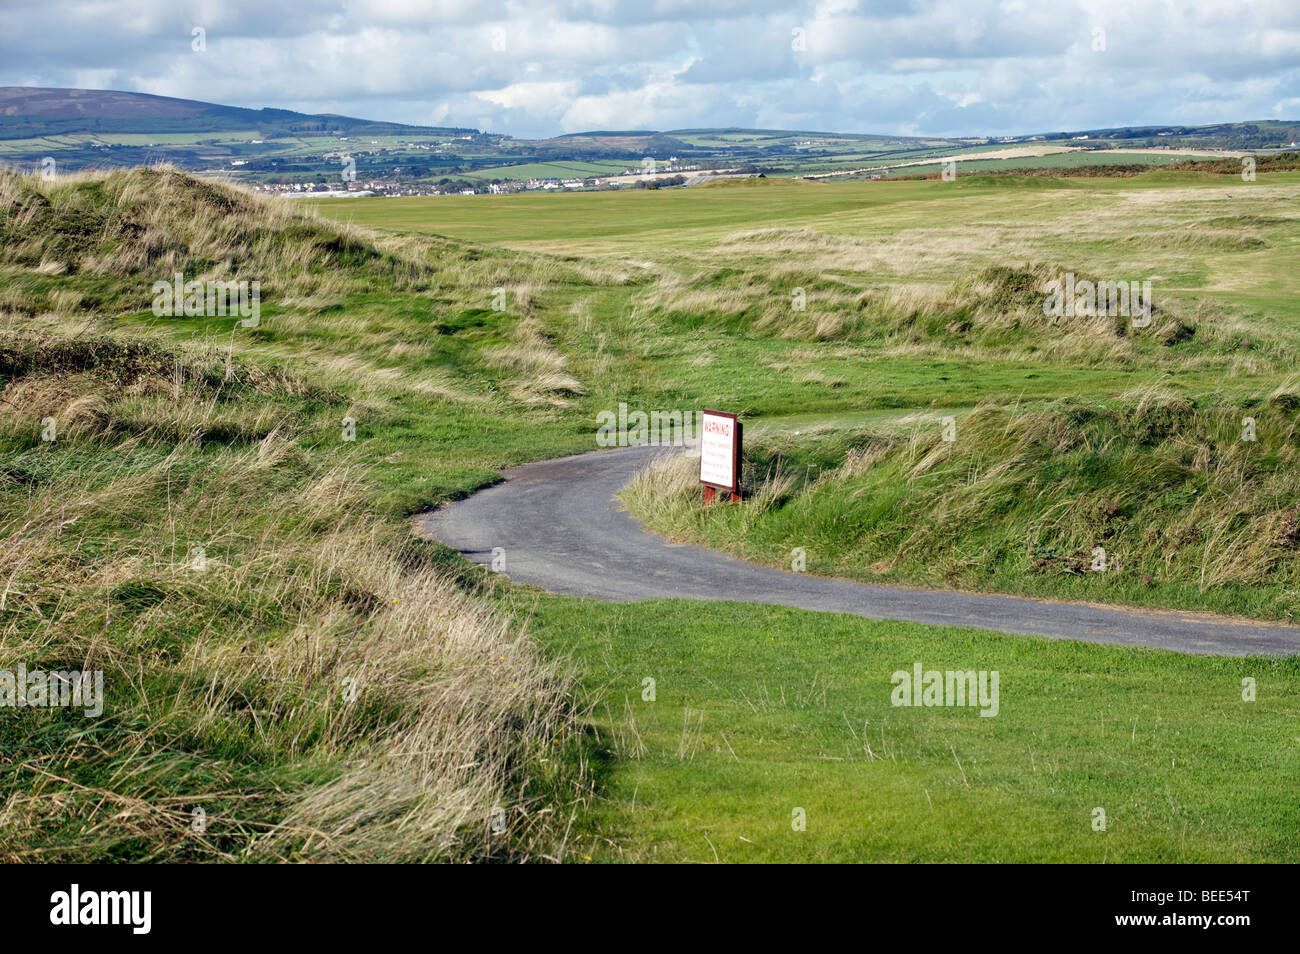 Winding path around green golf links course with background hills - Stock Image